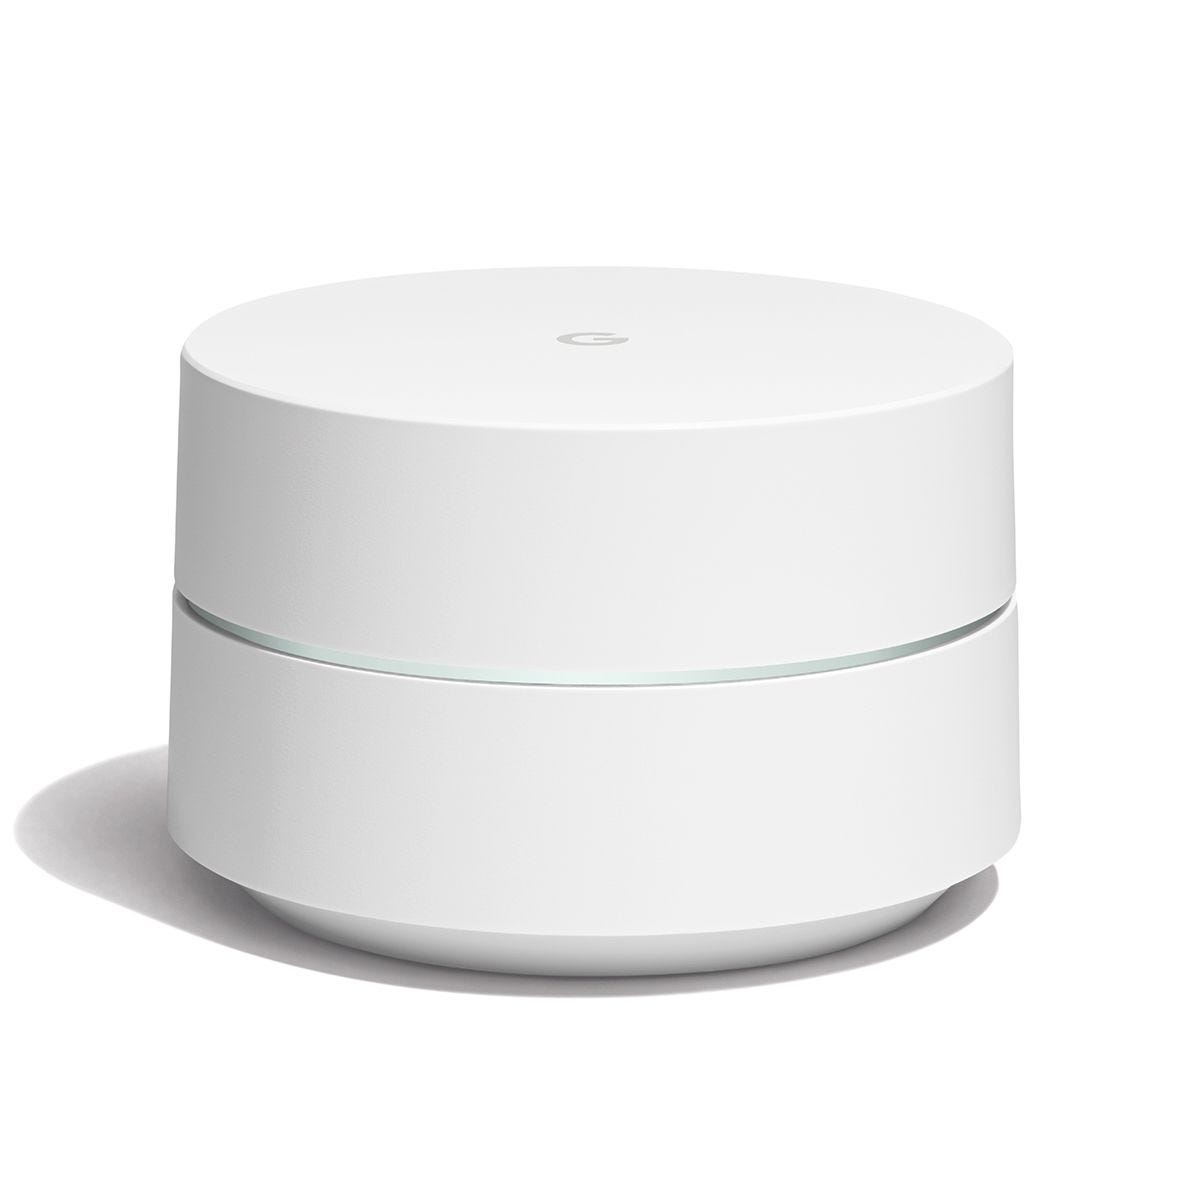 Google Wifi Whole Home Wi-Fi System, 4GB eMMC Flash Storage, 512MB RAM - 1 Pack